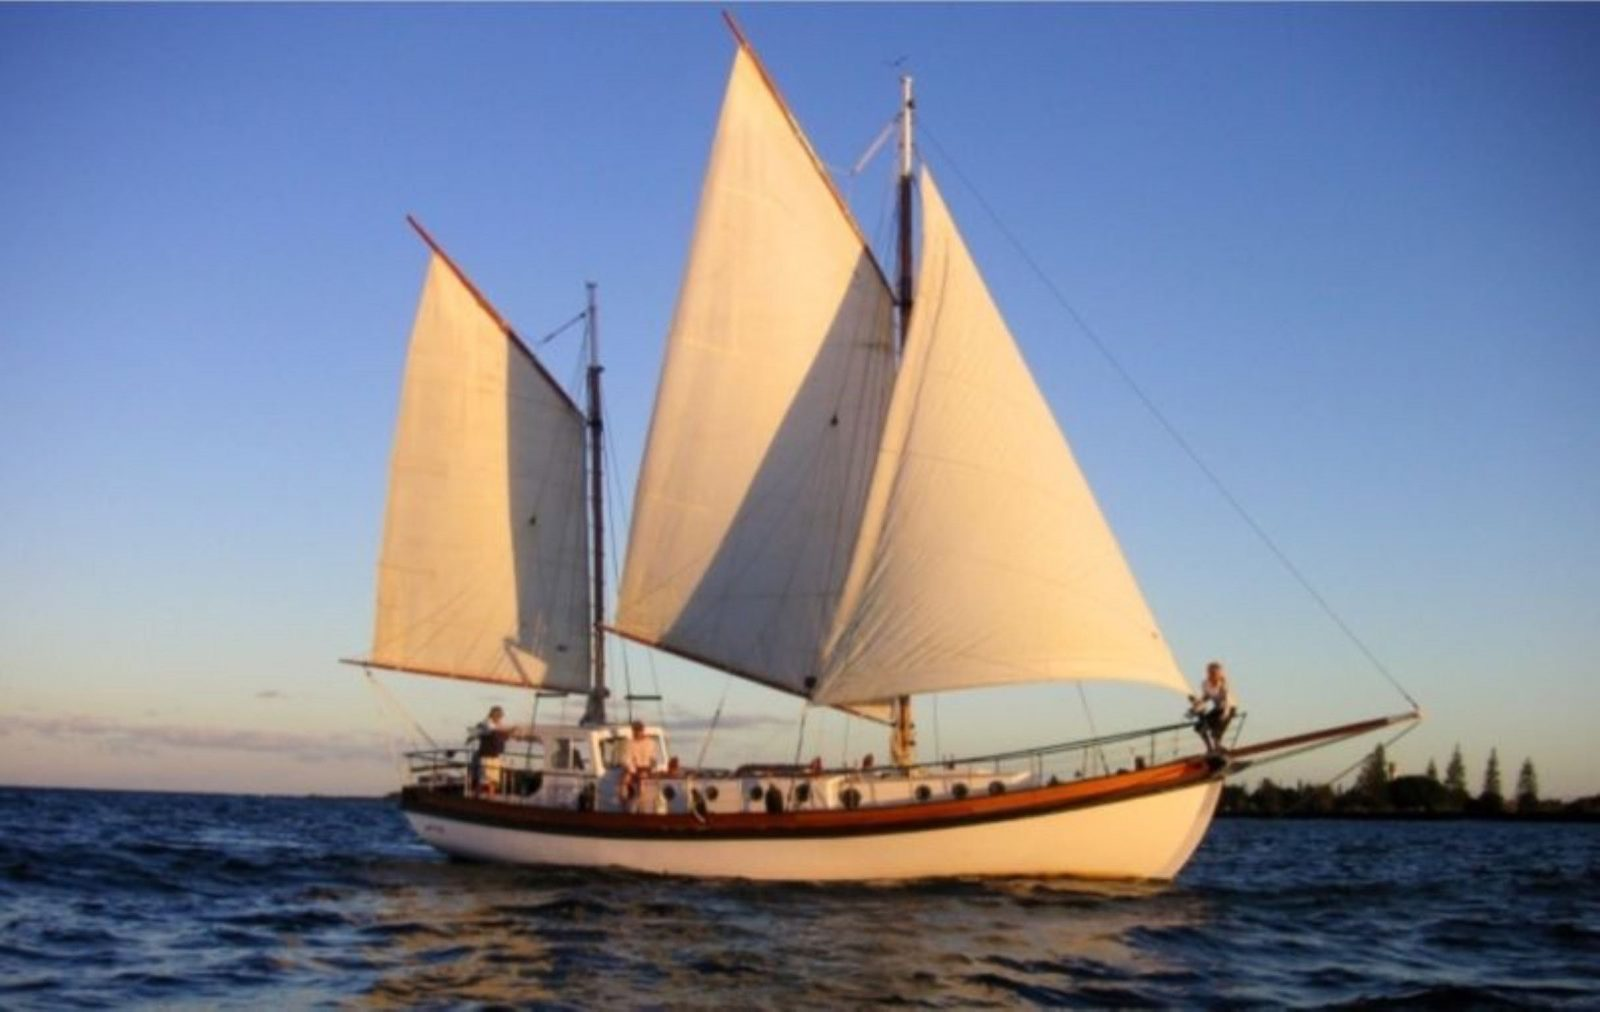 100 year old gaff rigged timber ketch